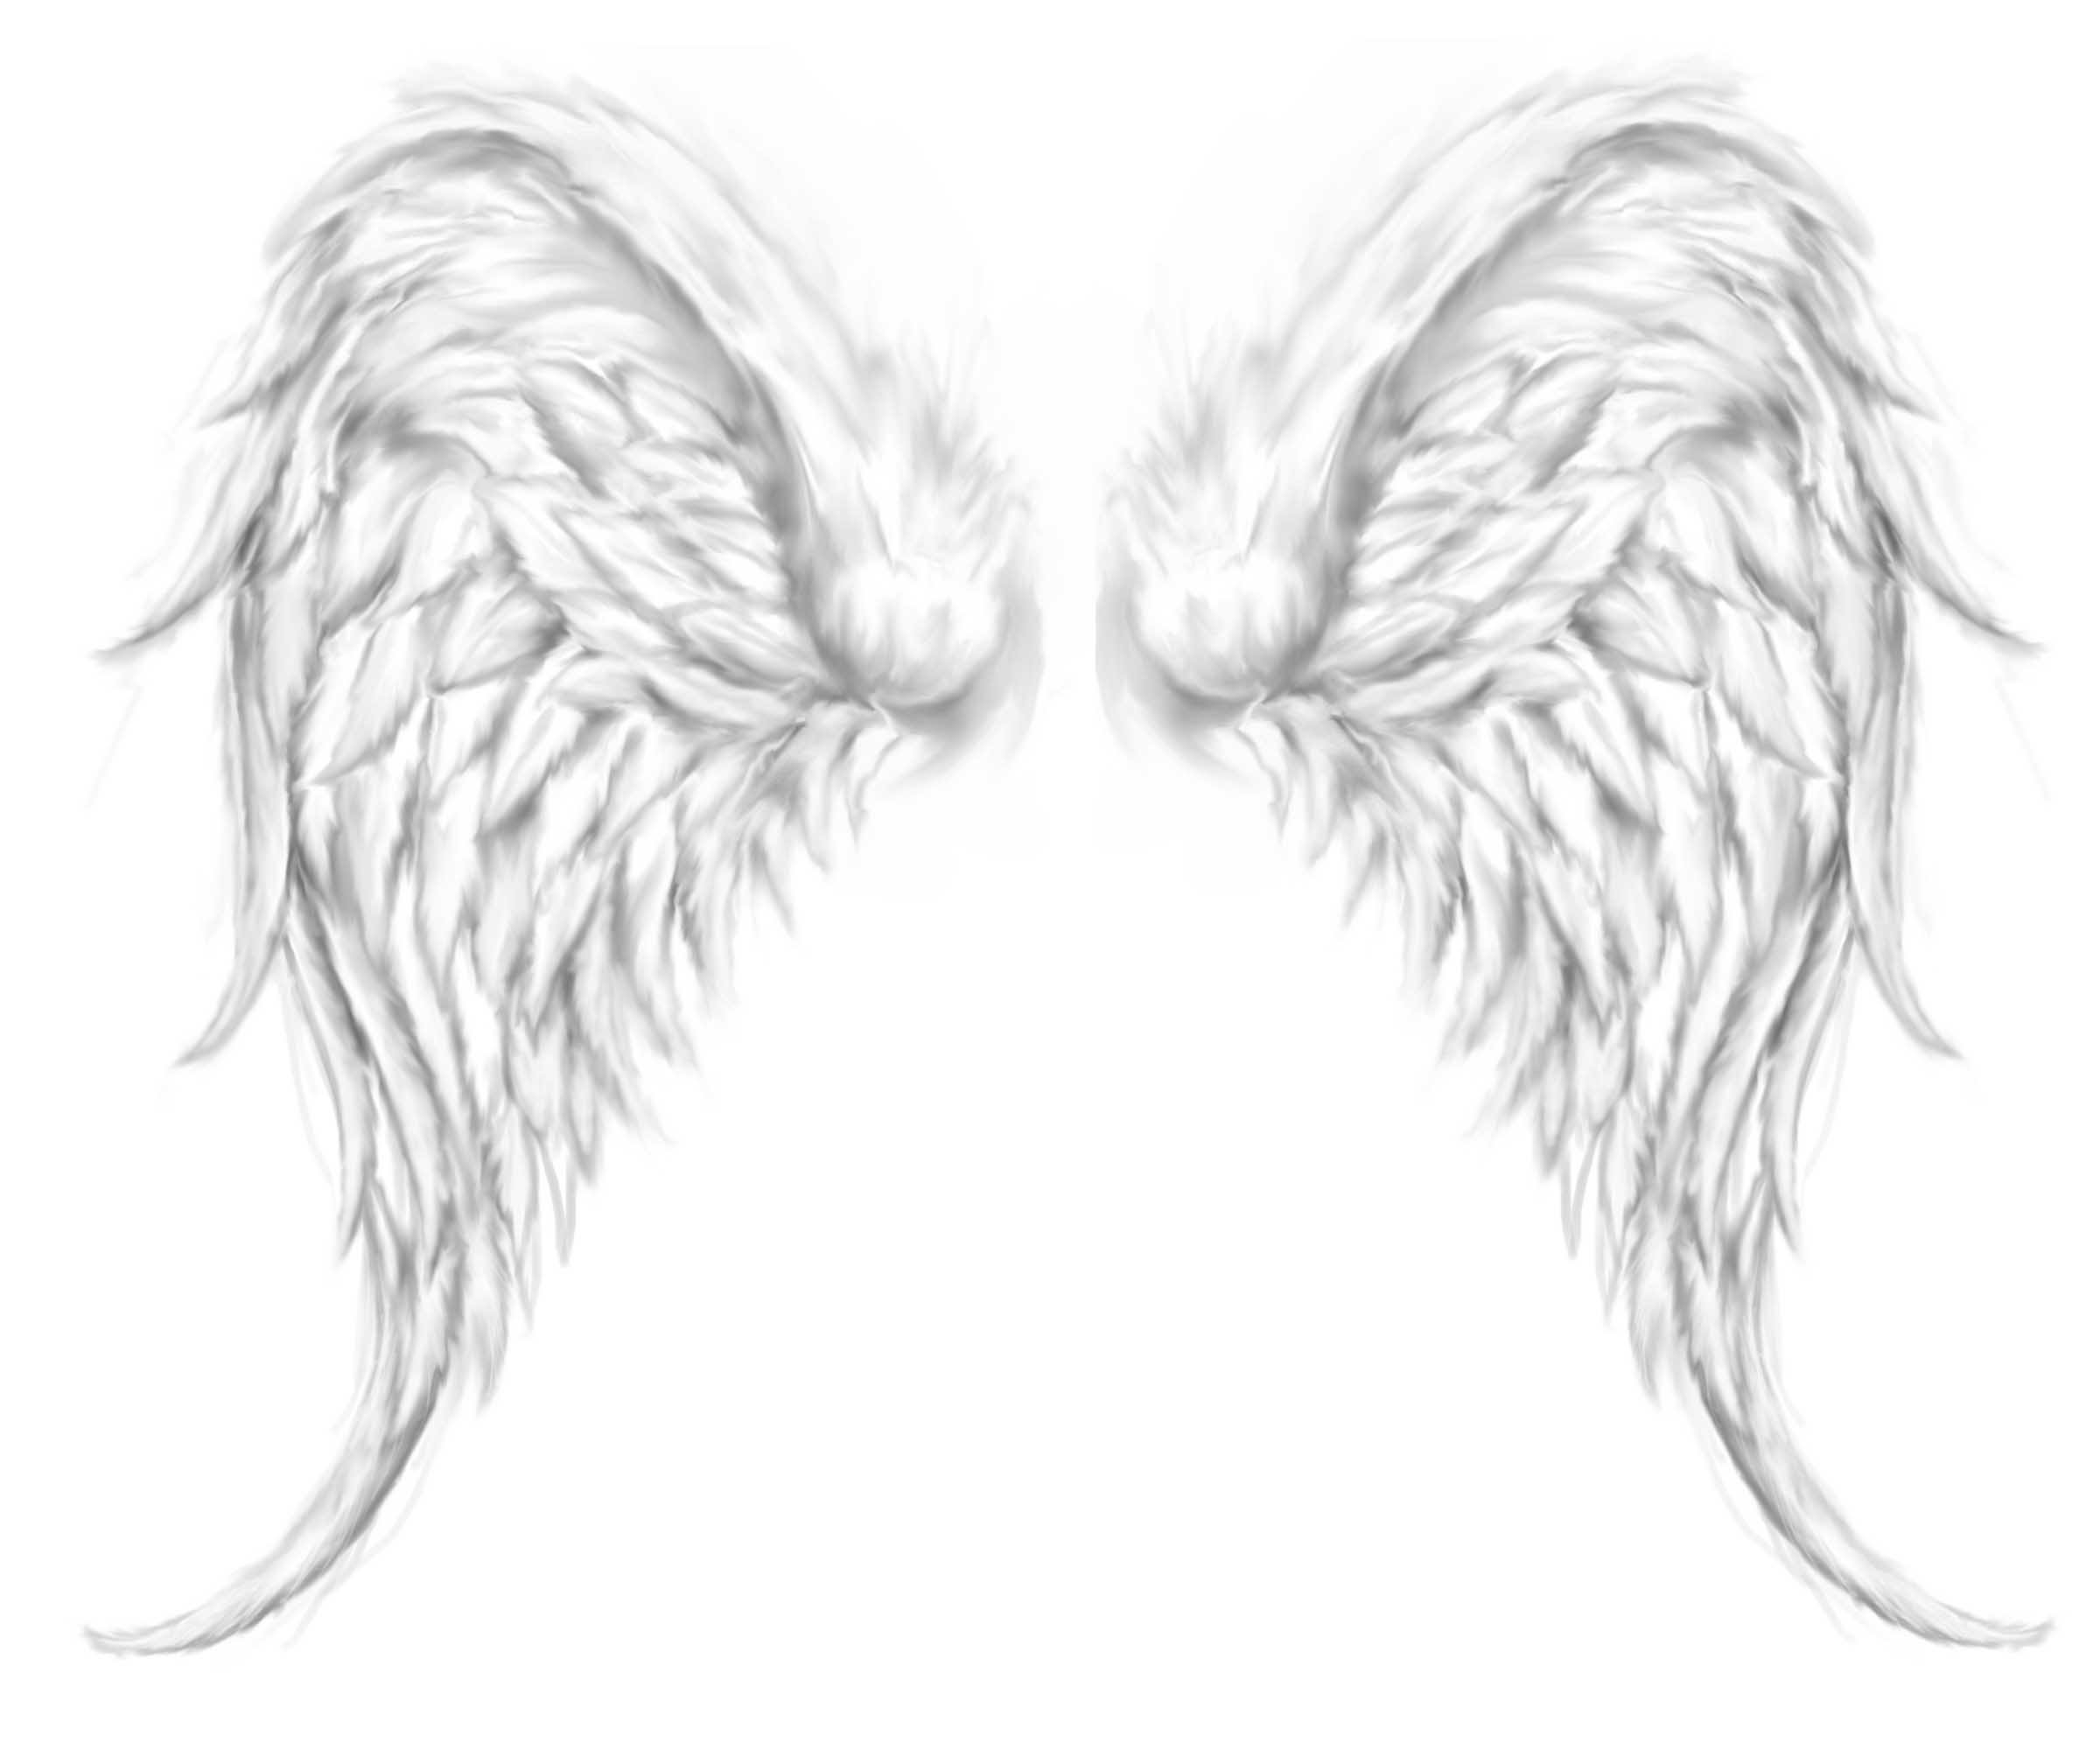 Special Blue Angel Wings Tattoo Design